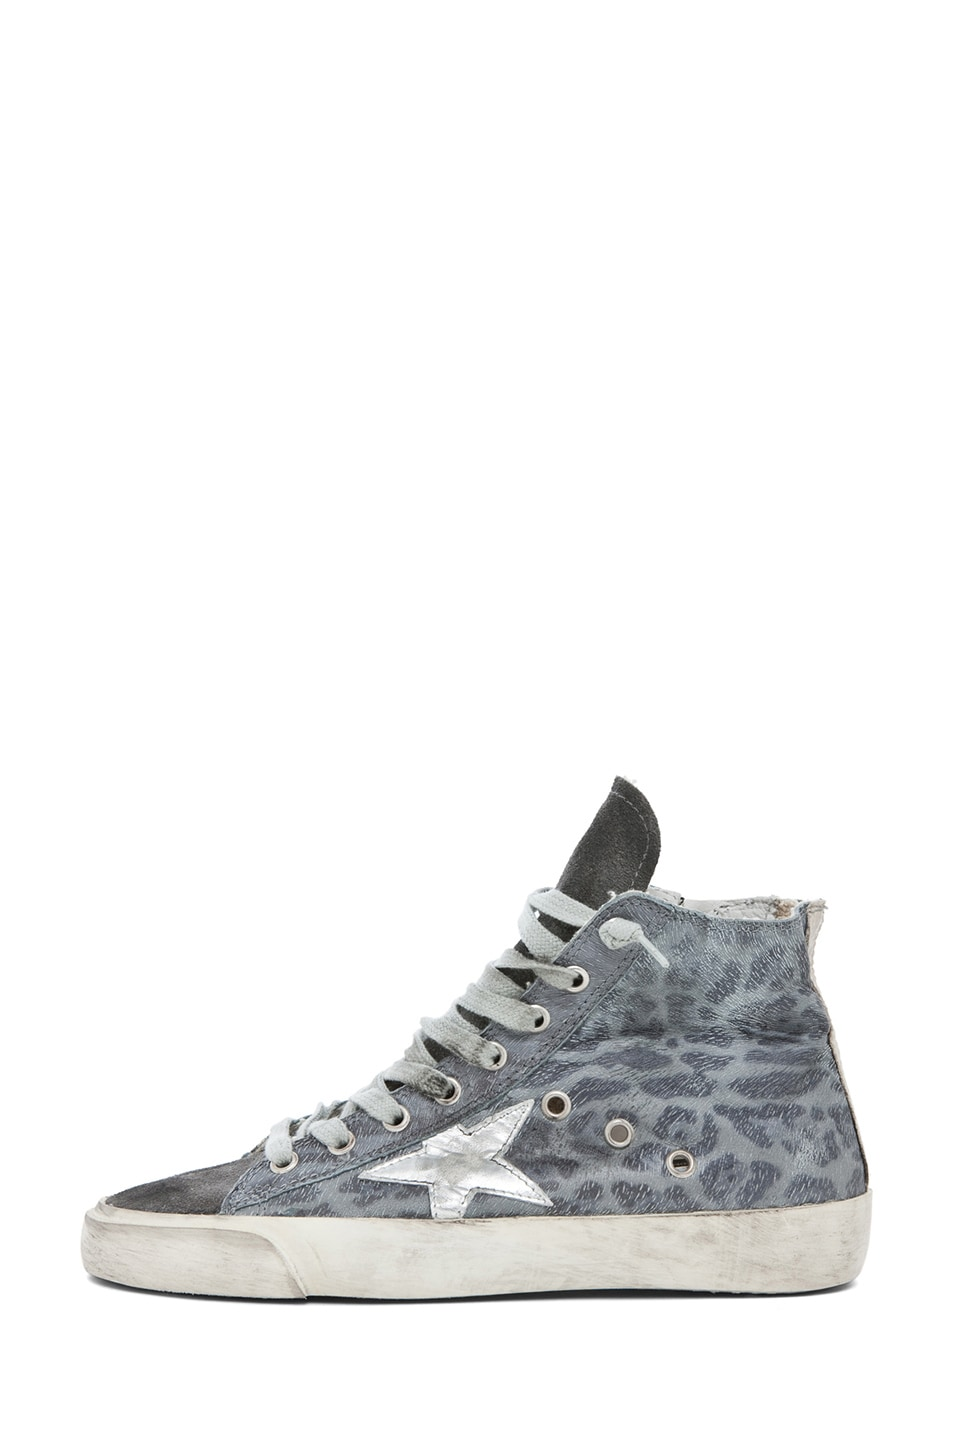 Image 1 of Golden Goose Francy Leopard High Top Sneaker in Silver